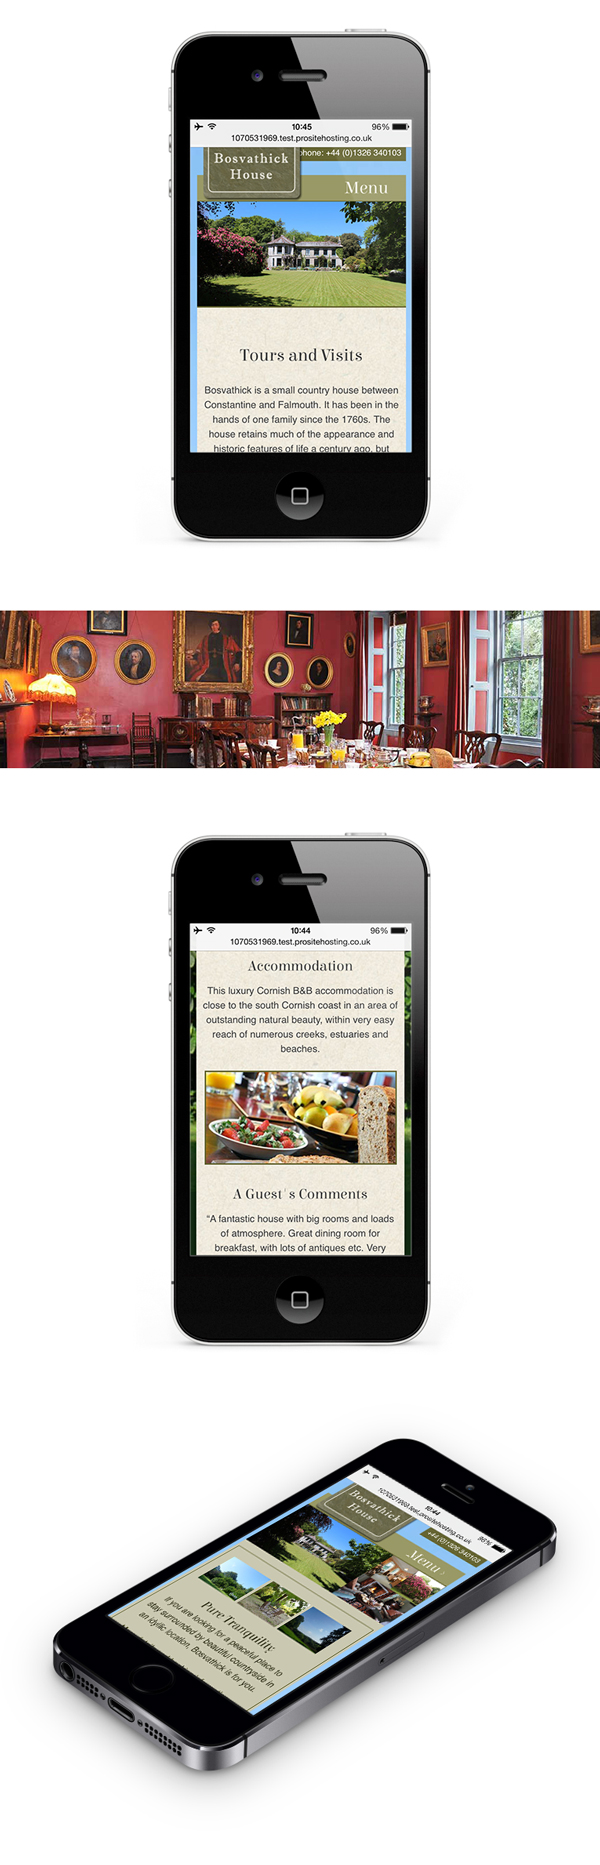 Web design with content management for Bosvathick Country House